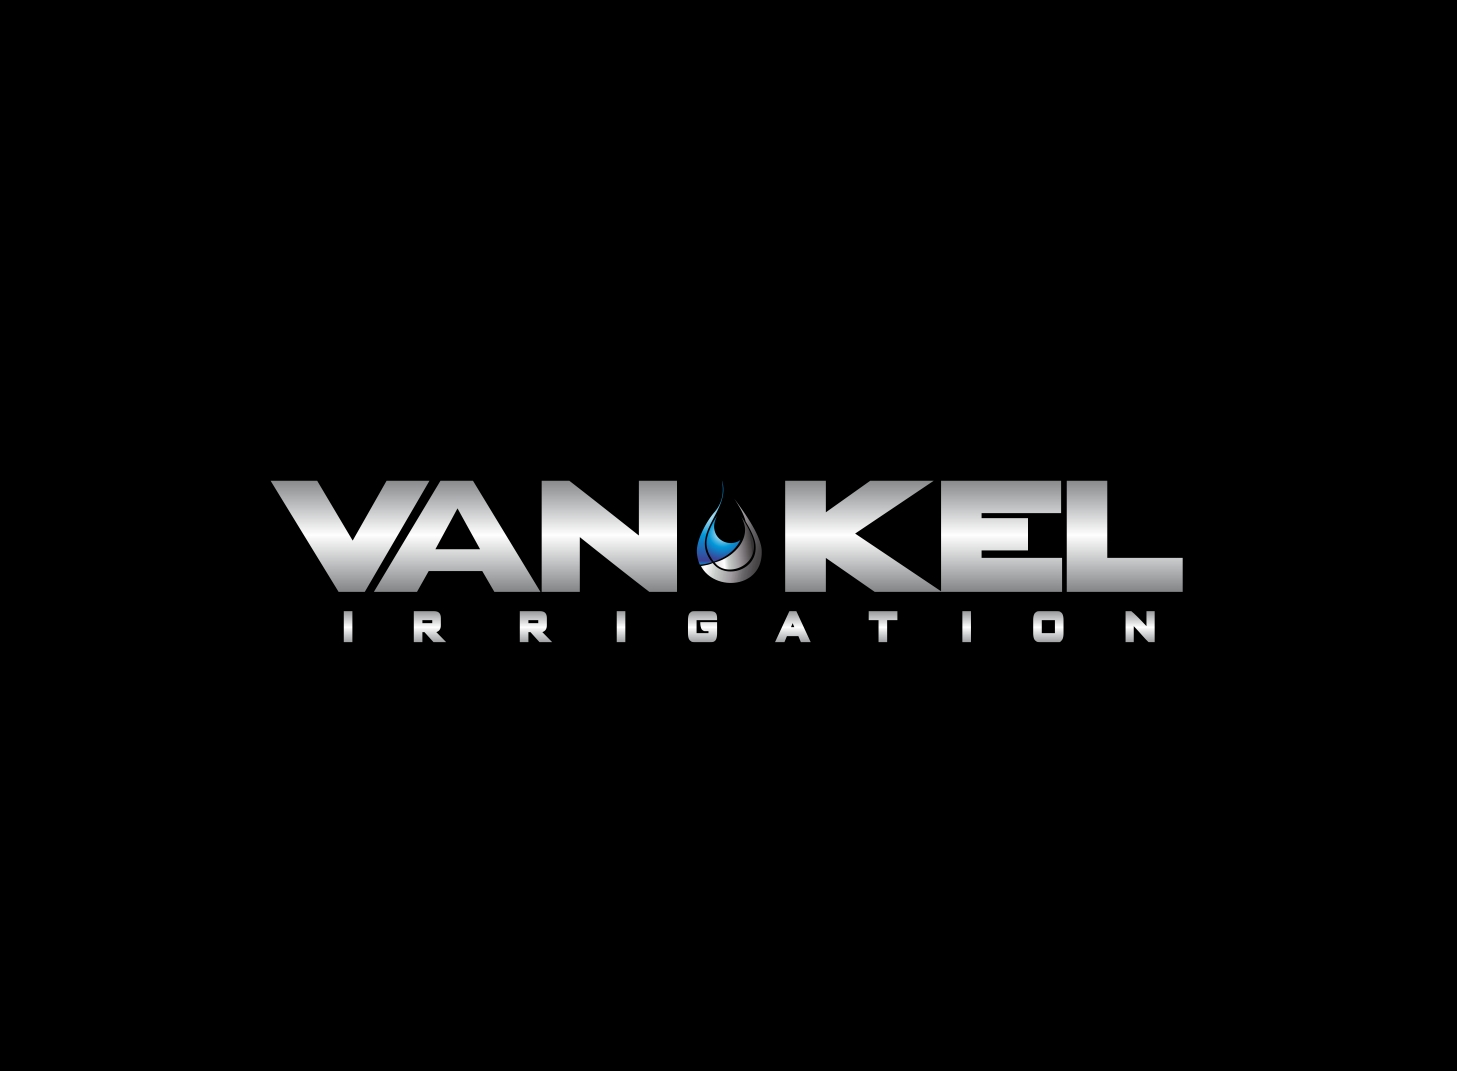 Logo Design by Zdravko Krulj - Entry No. 121 in the Logo Design Contest Van-Kel Irrigation Logo Design.